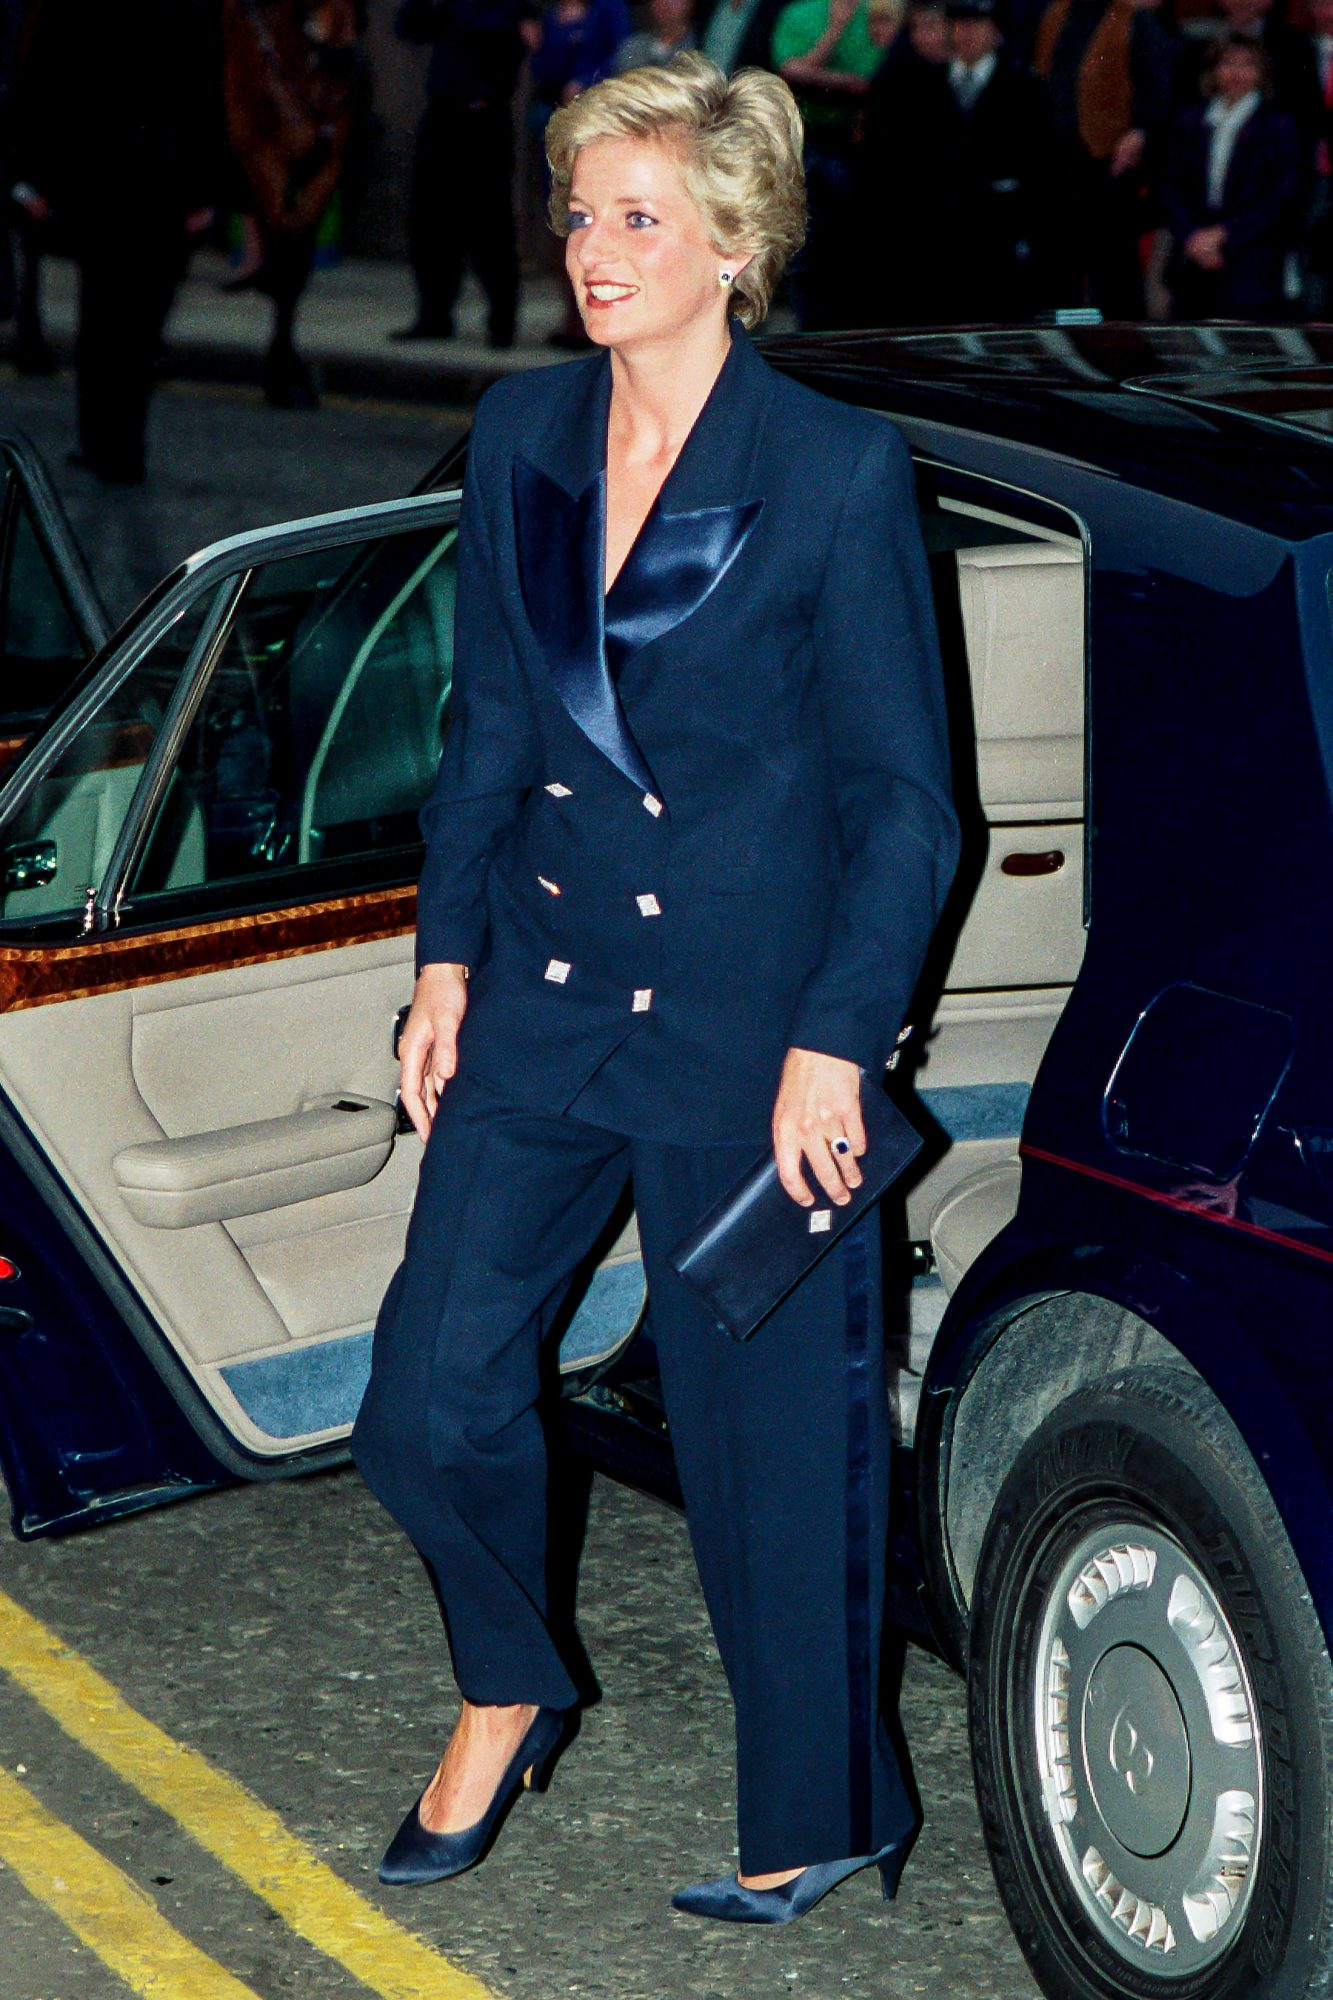 Diana, Princess of Wales attends a Charity Concert